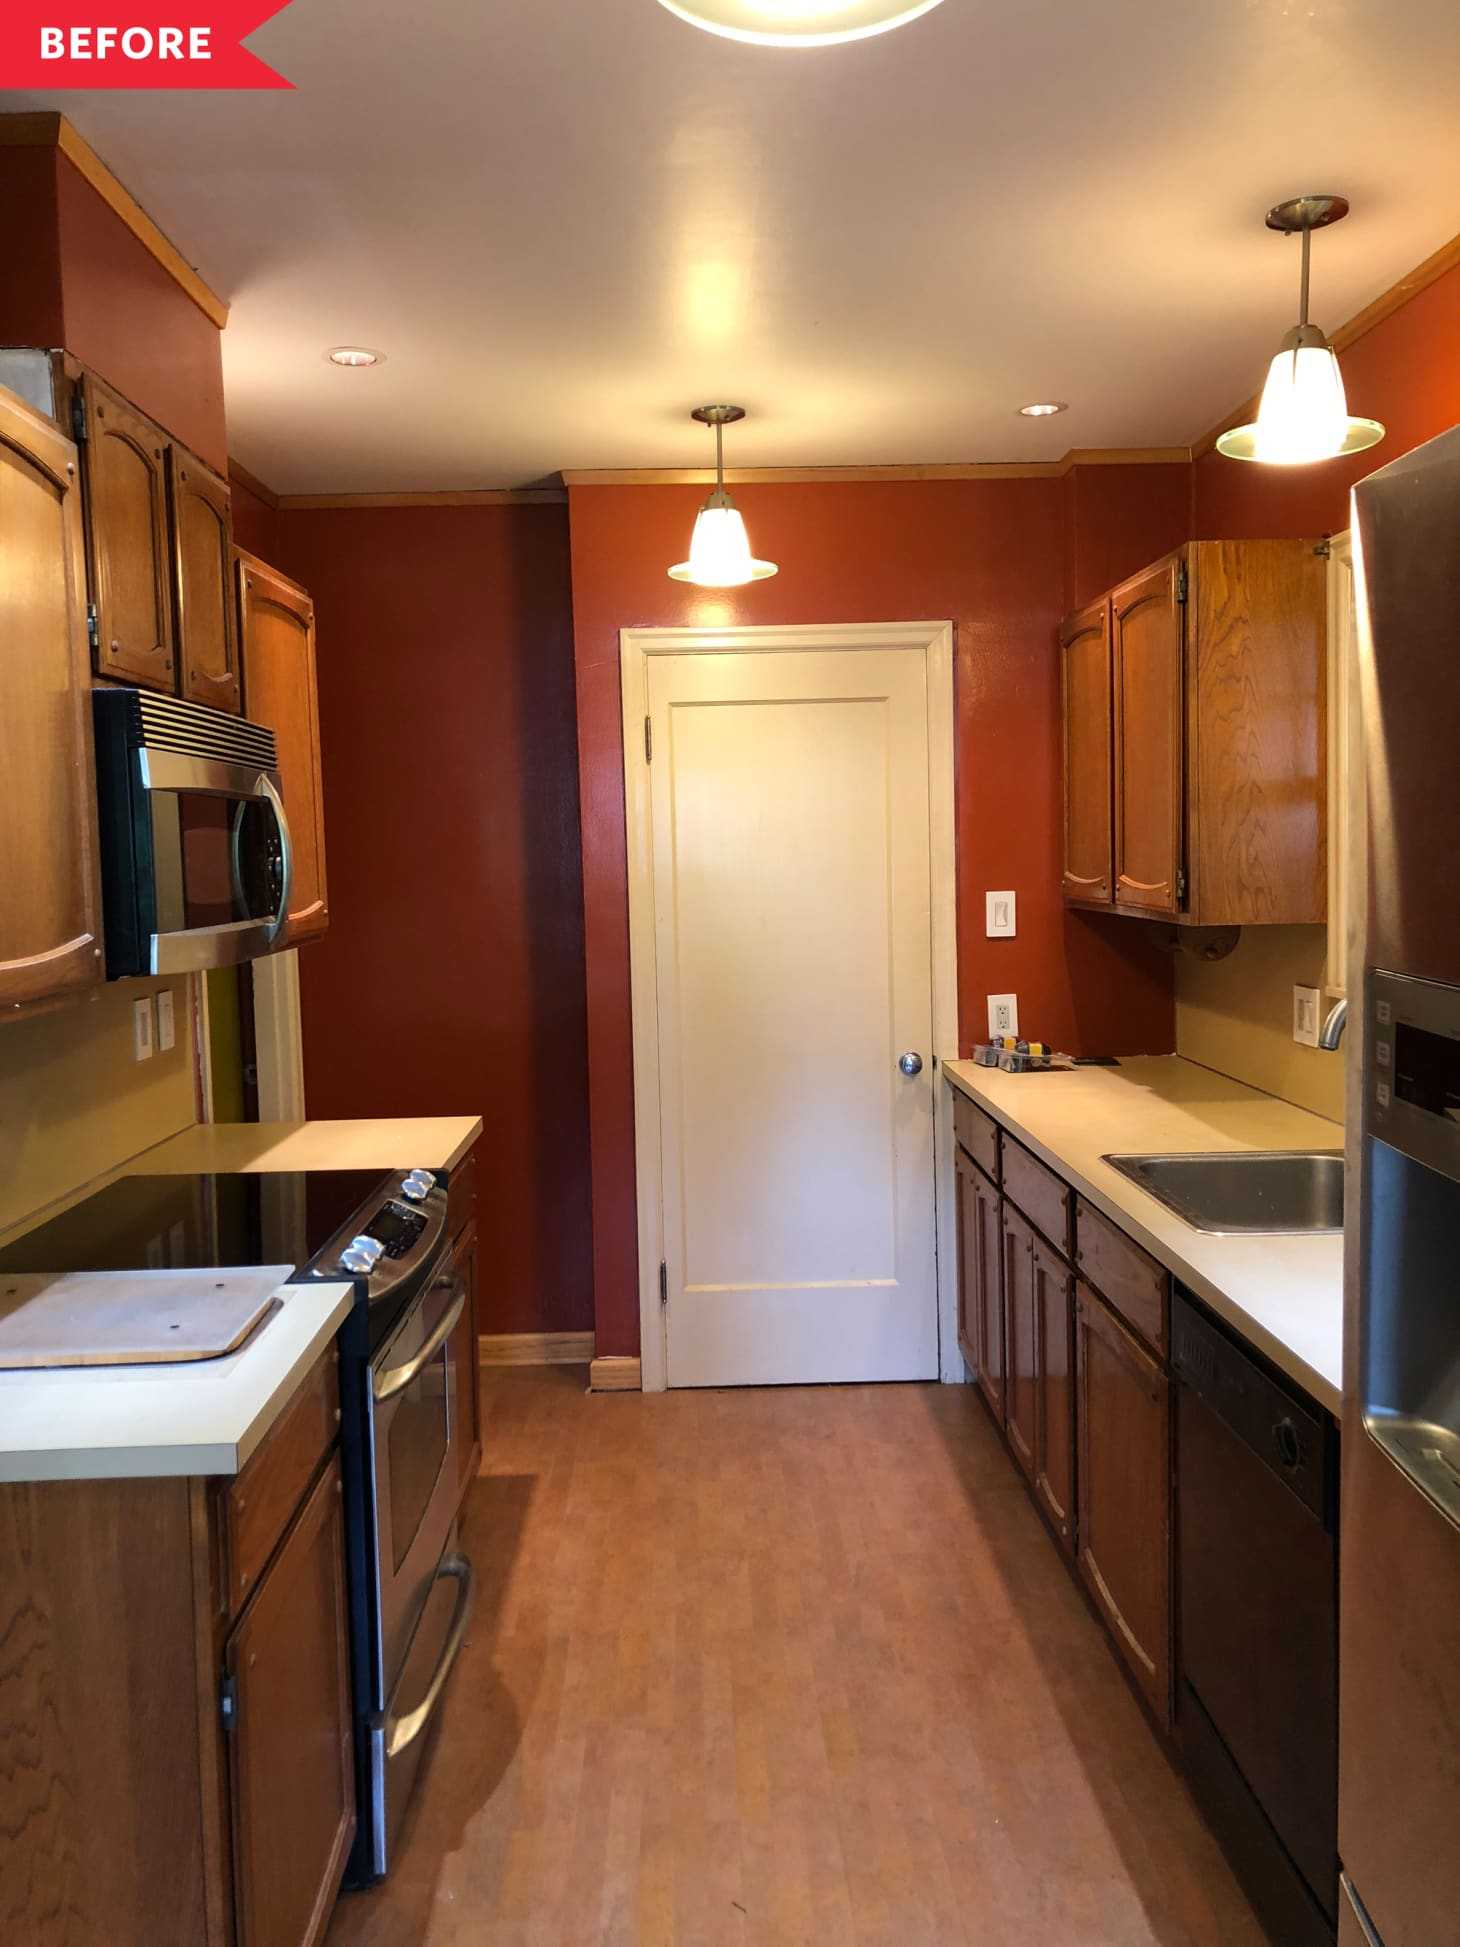 Dated Kitchen Budget Remodel Project | Apartment Therapy